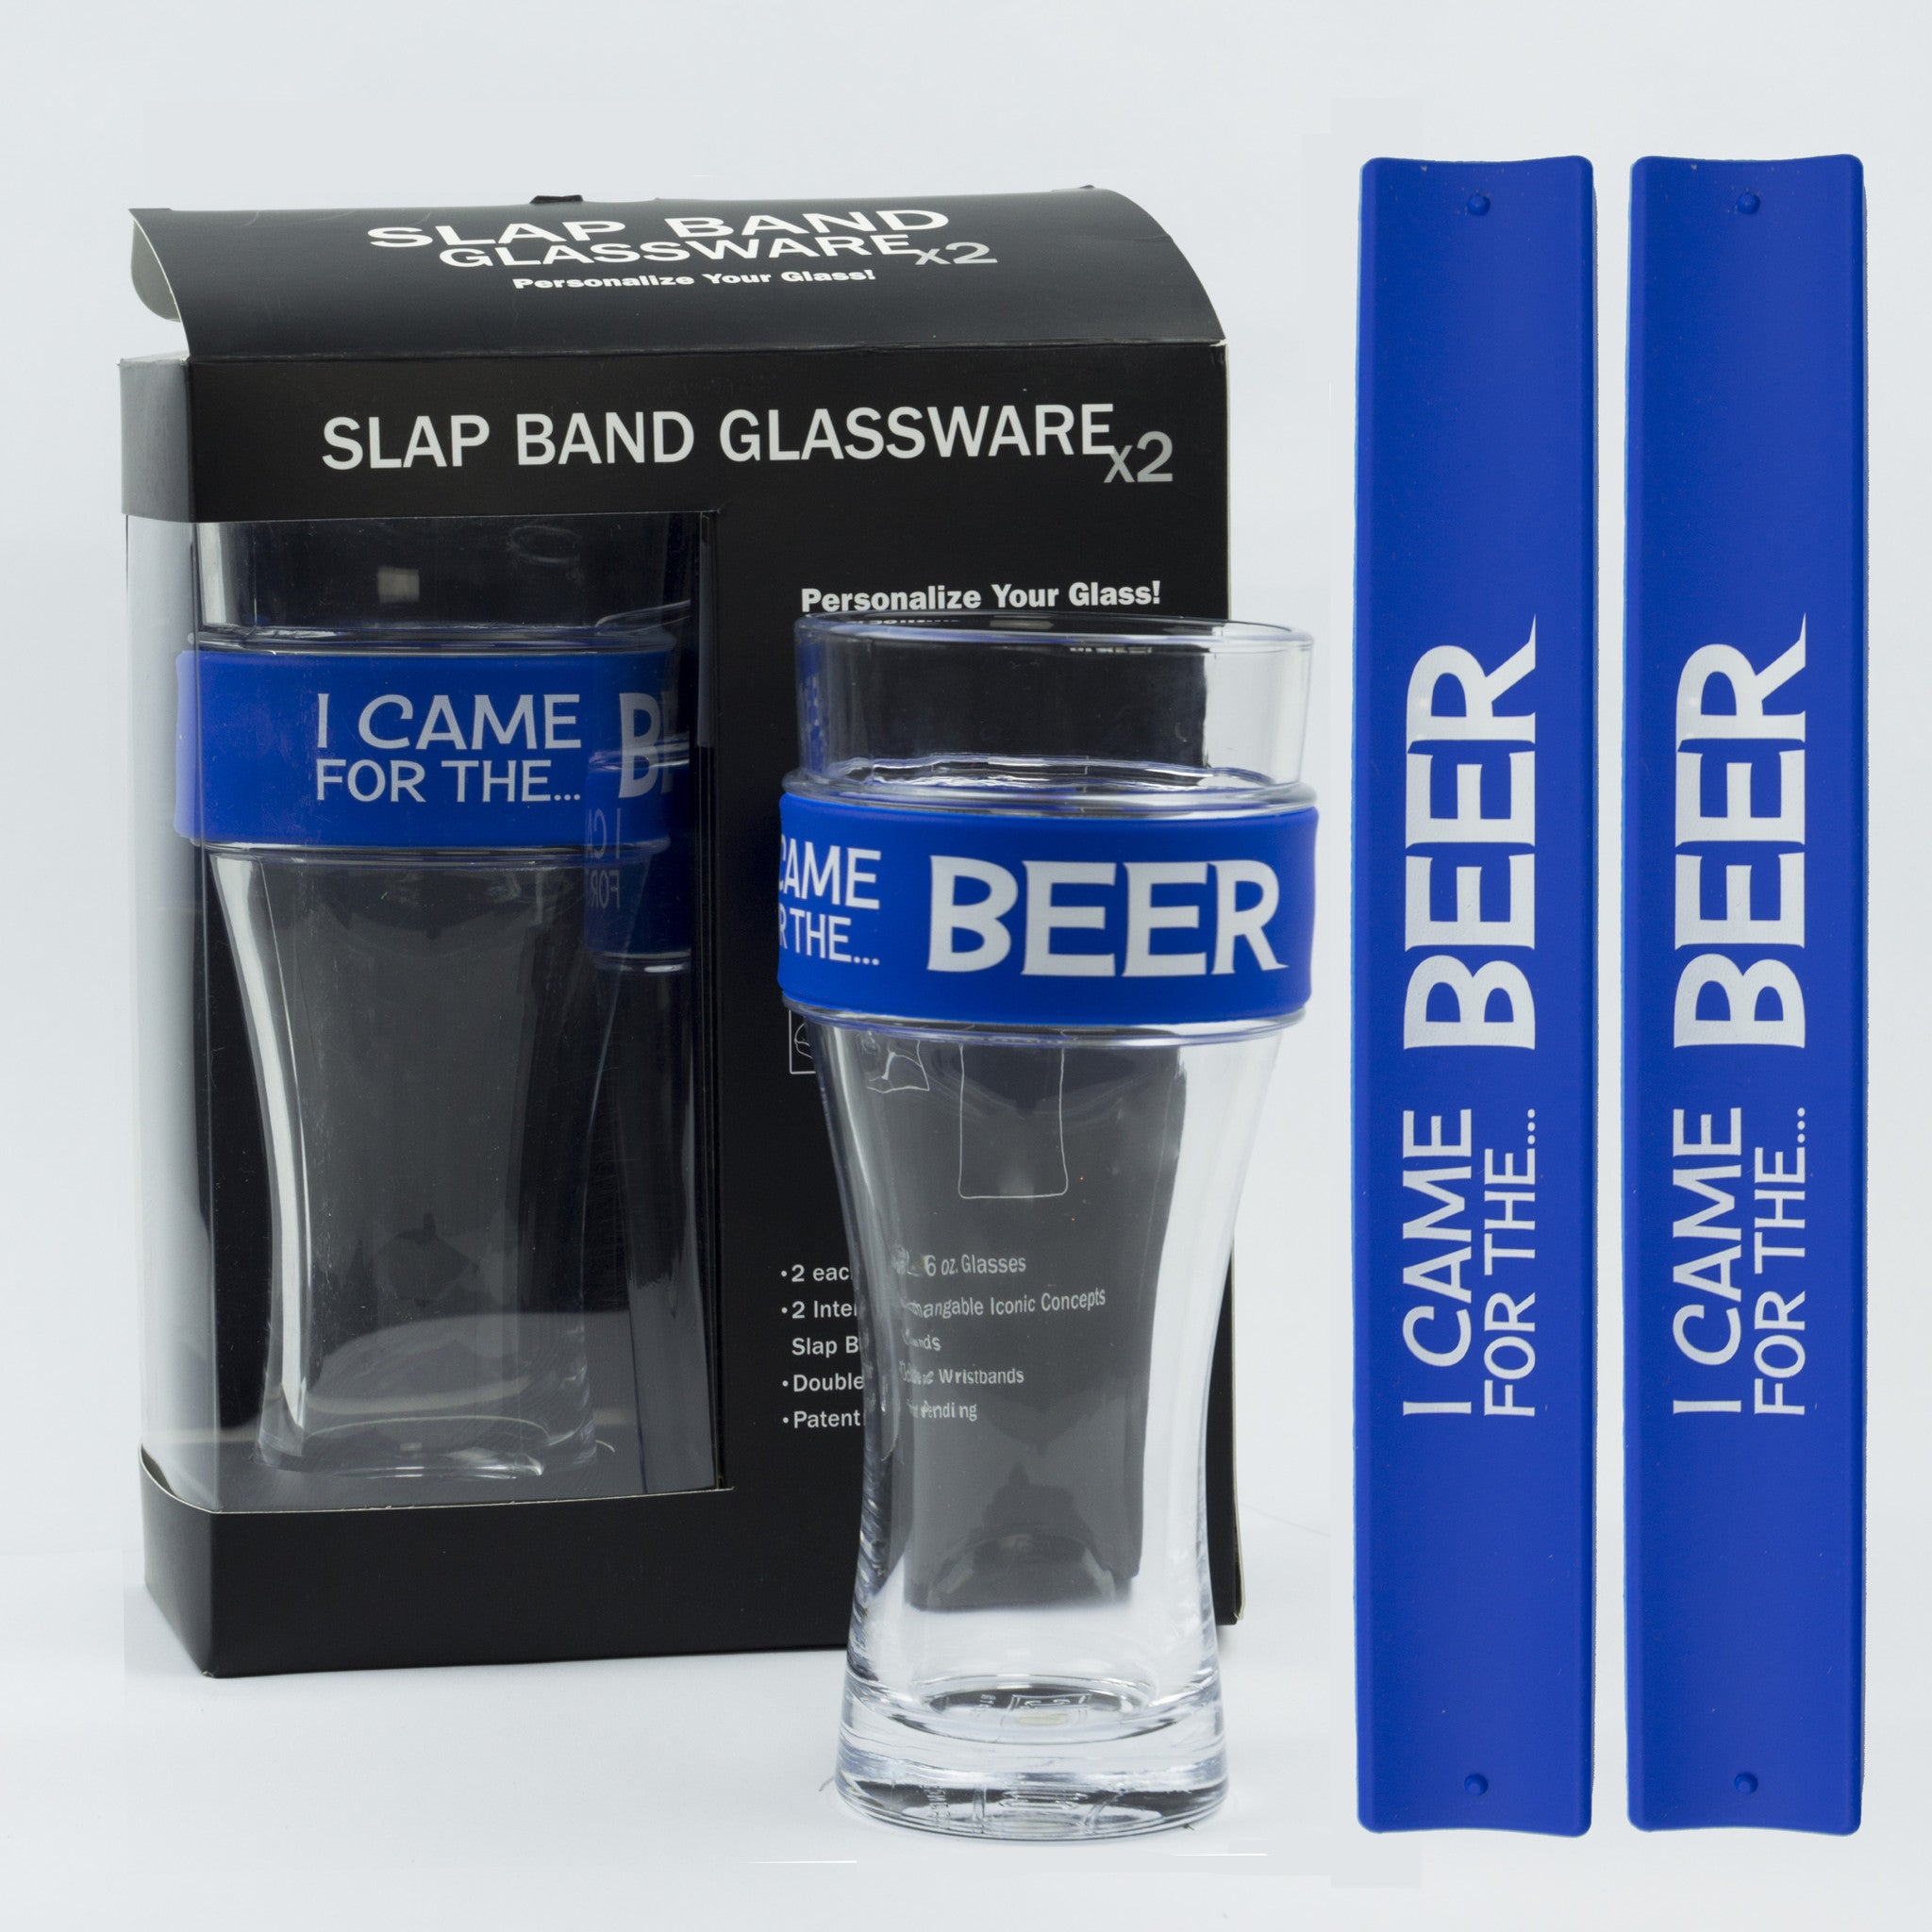 Humor Slap Band Glassware - I Came For The Beer